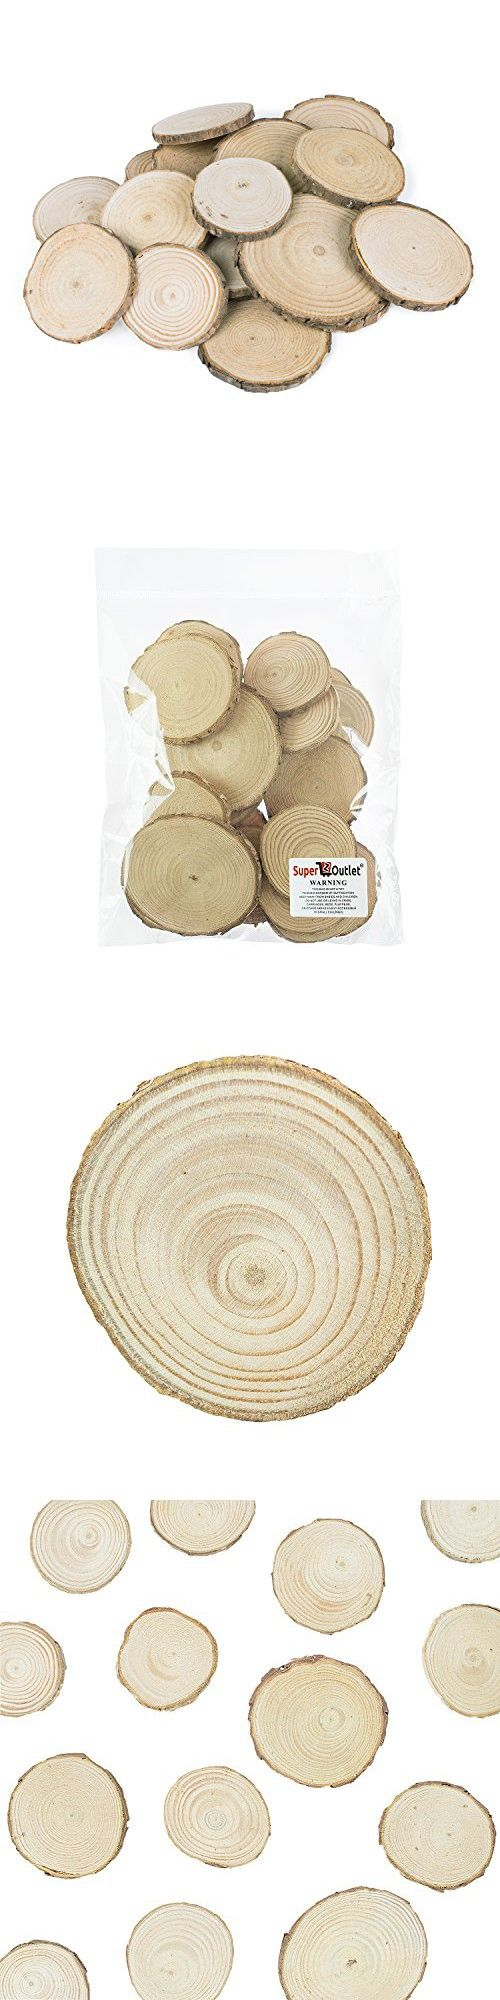 Mini Assorted Size Natural Color Tree Bark Wood Slices Round Log ...